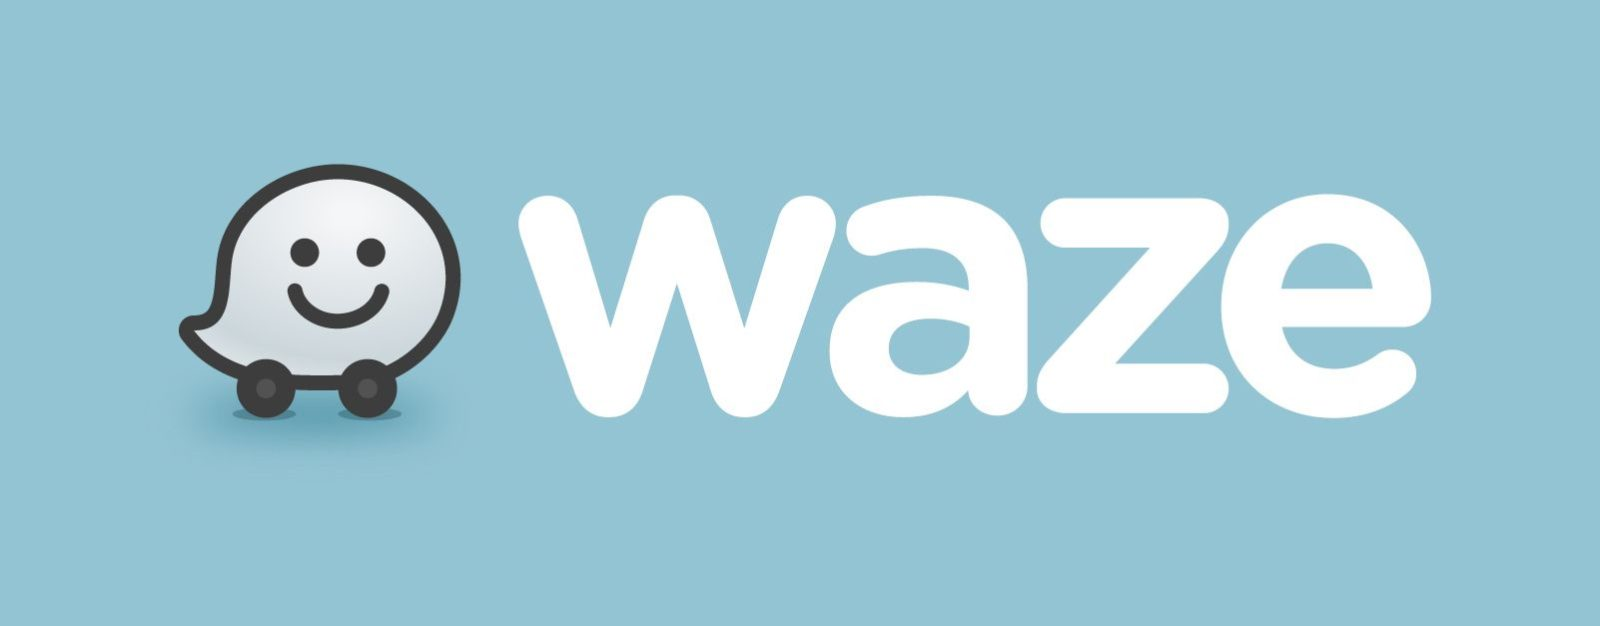 Waze updated with its latest celebrity navigation voice